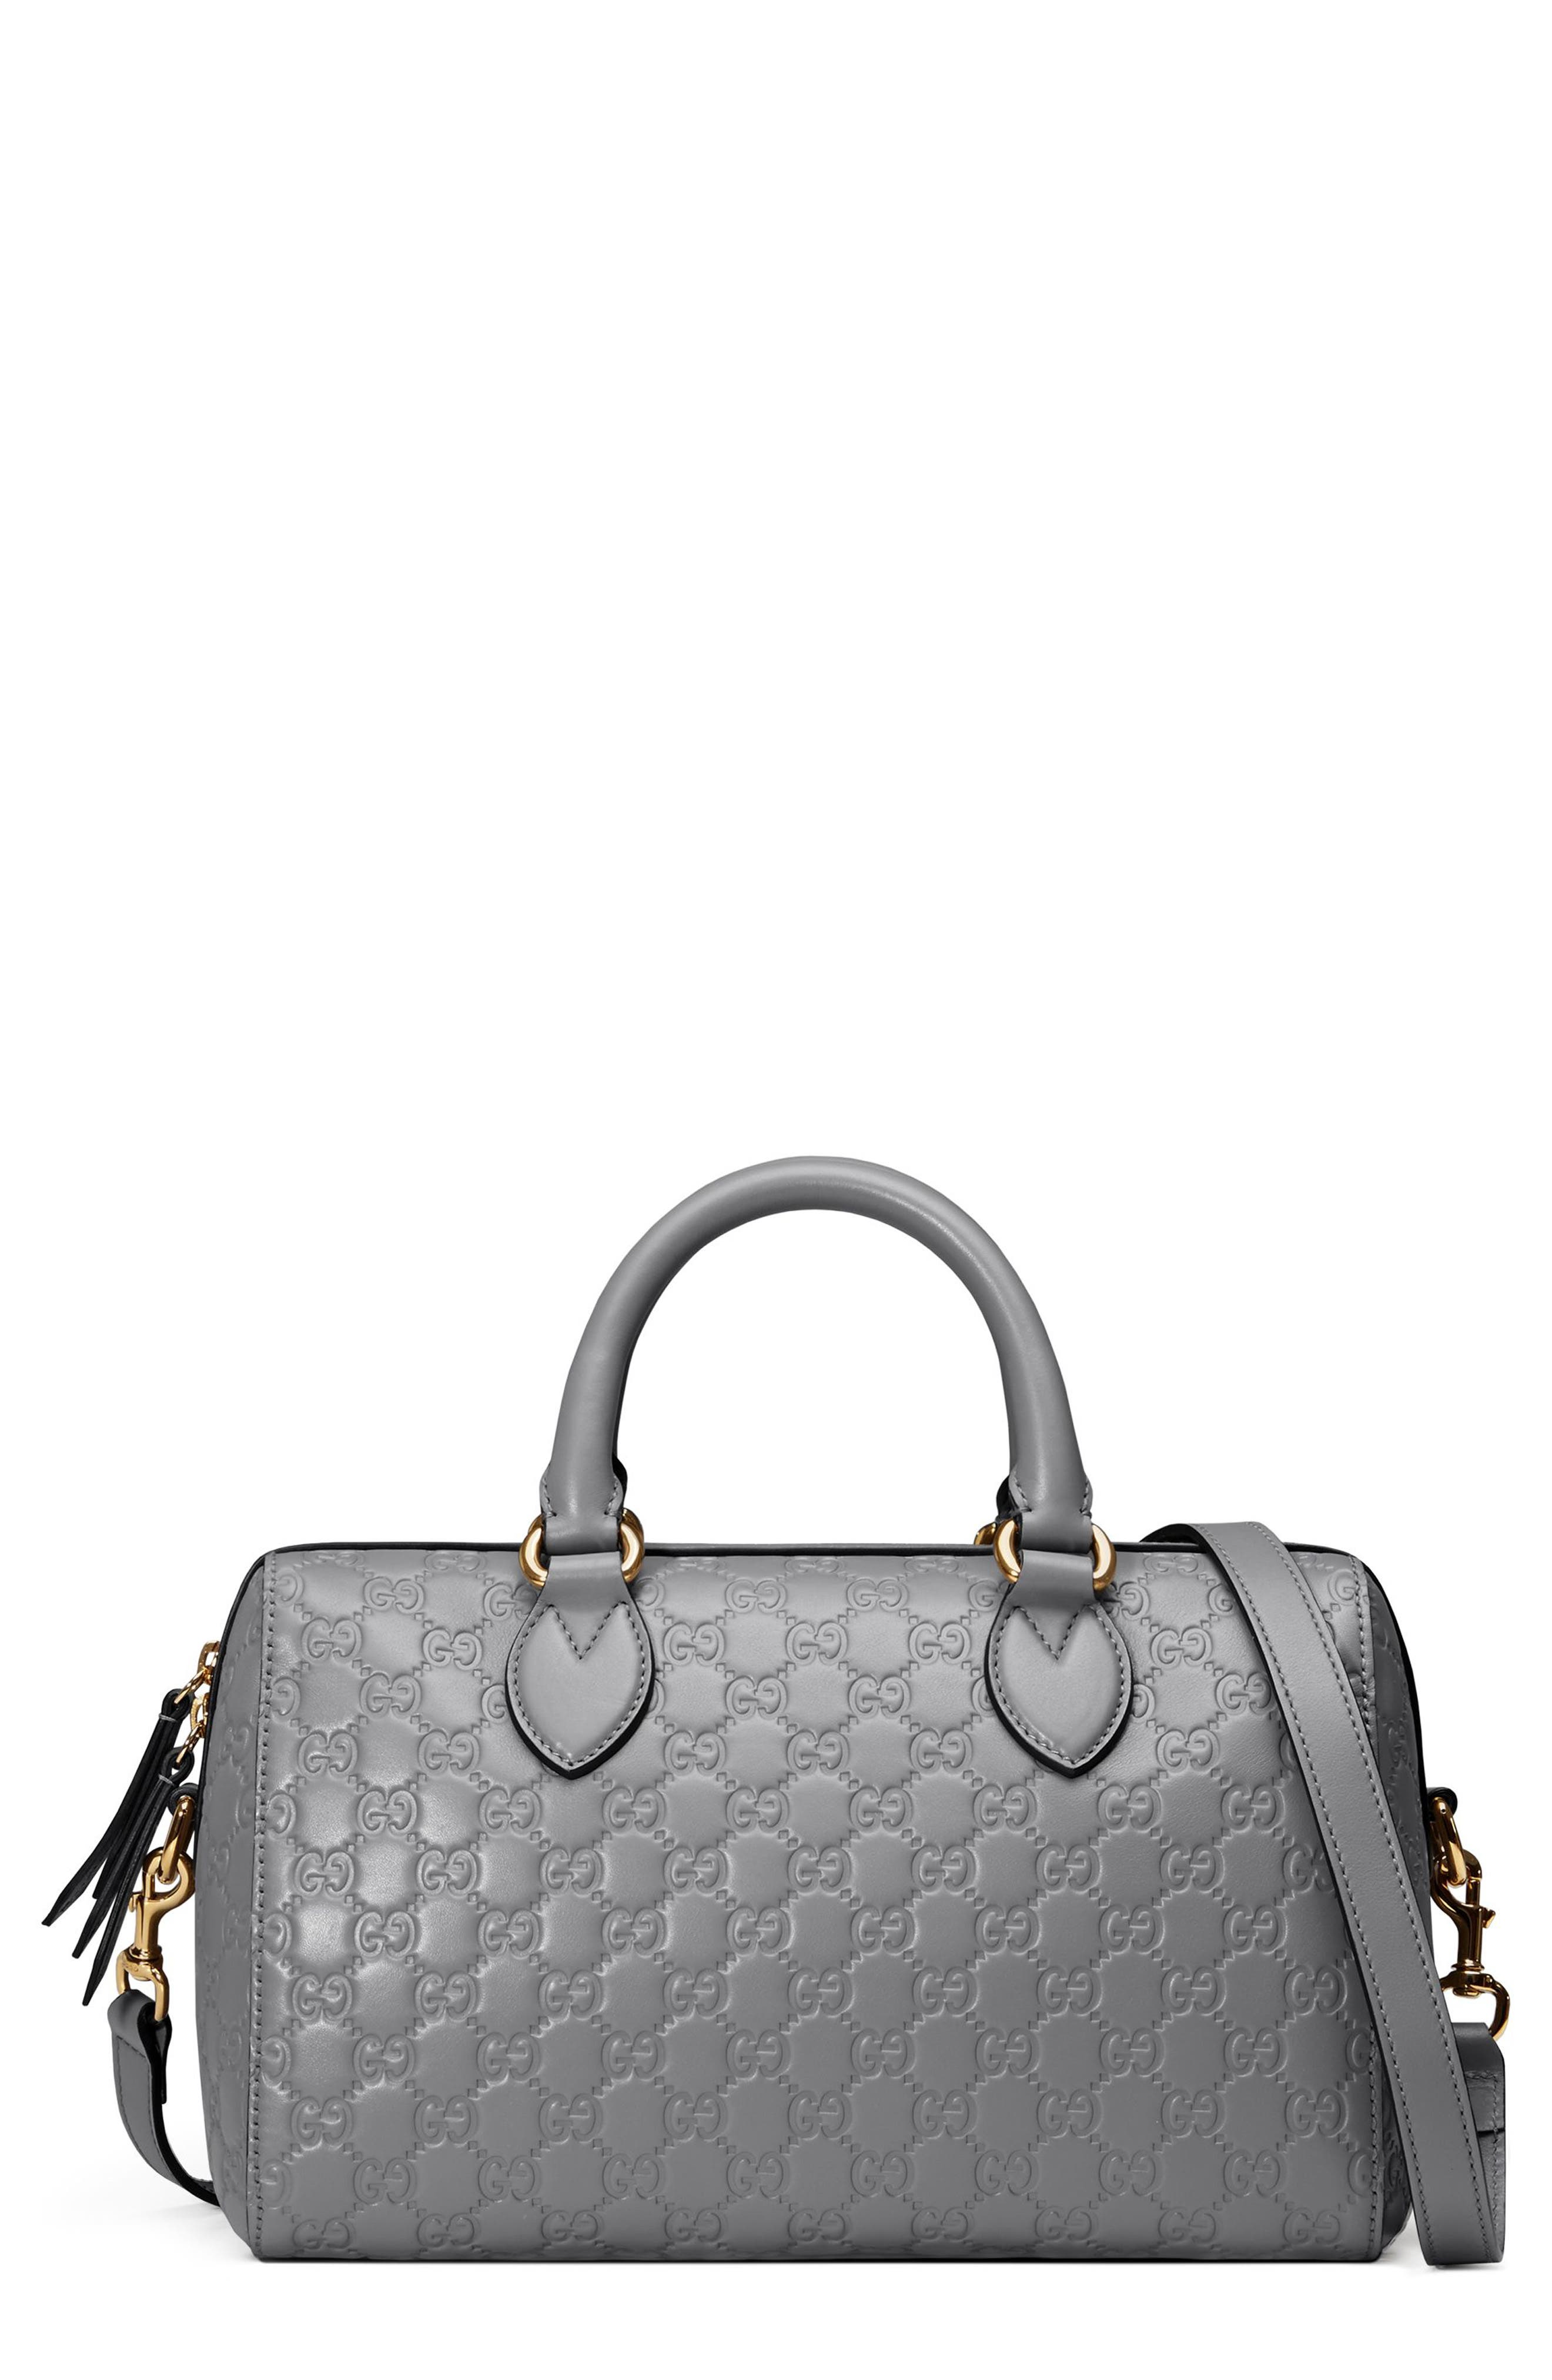 Gucci Medium Signature Top Handle Leather Satchel